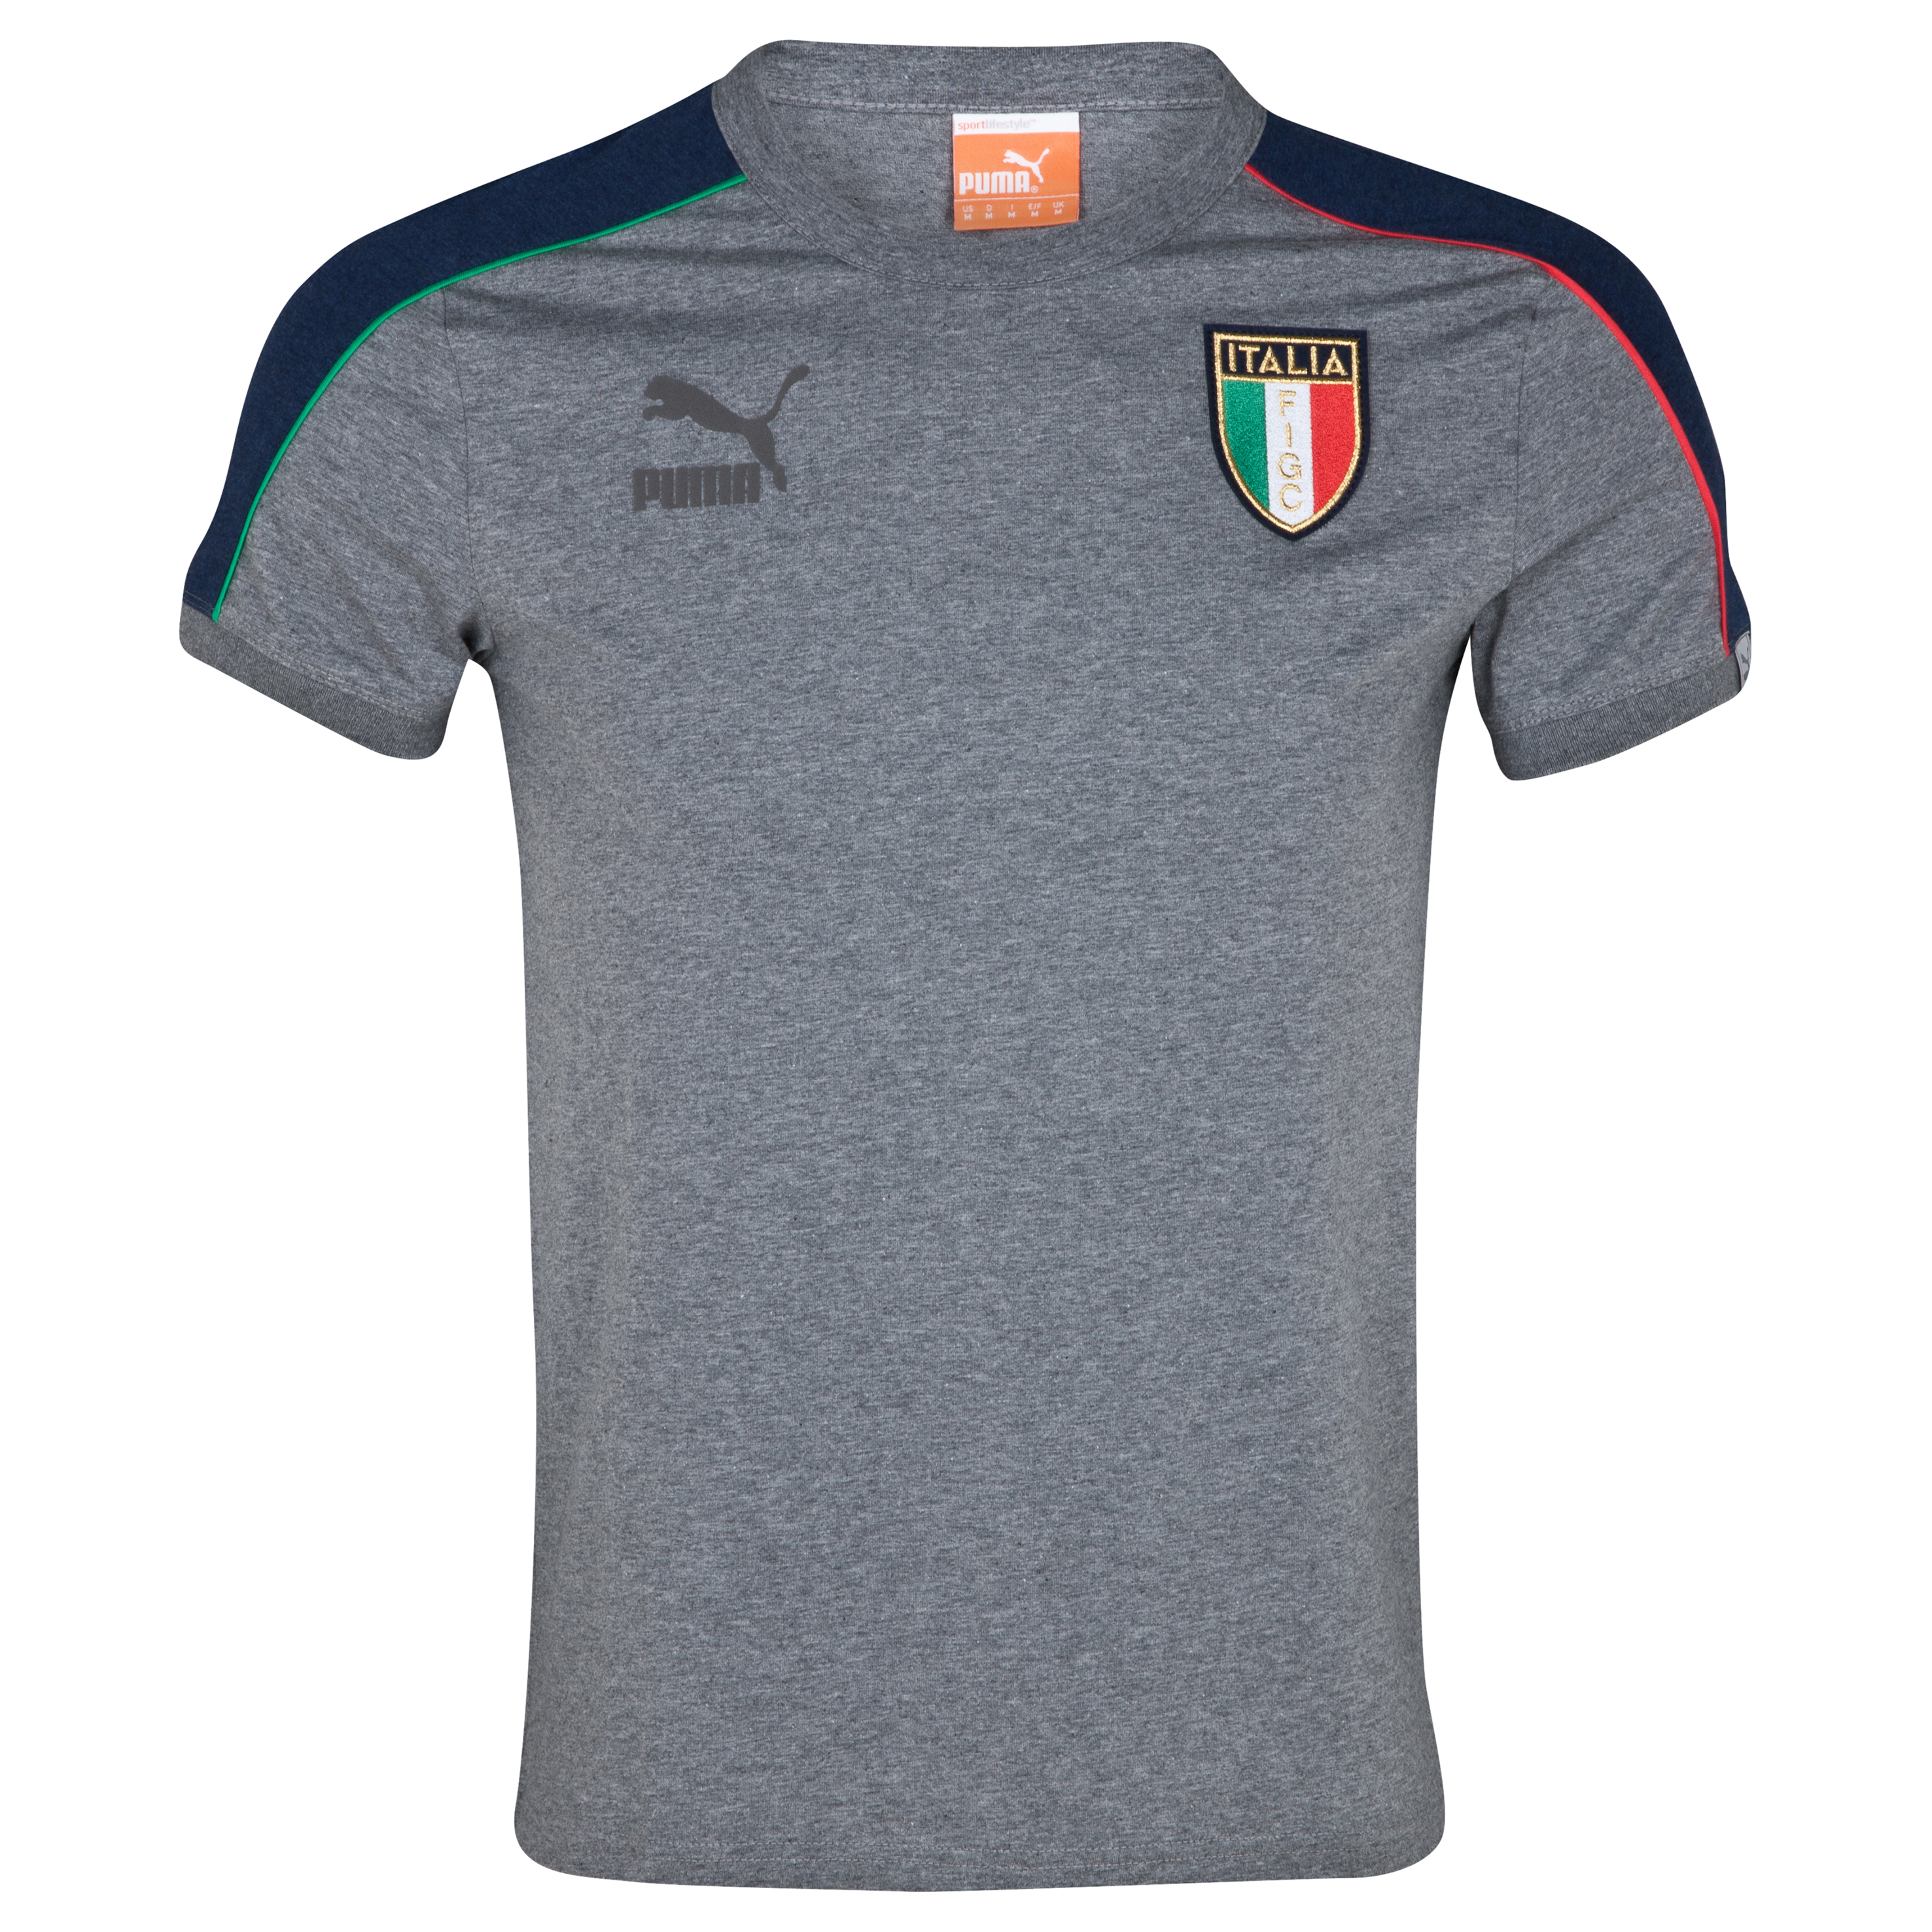 Puma Italy T7 Badge T-Shirt - Medium Grey Heather/Dark Denim Heather